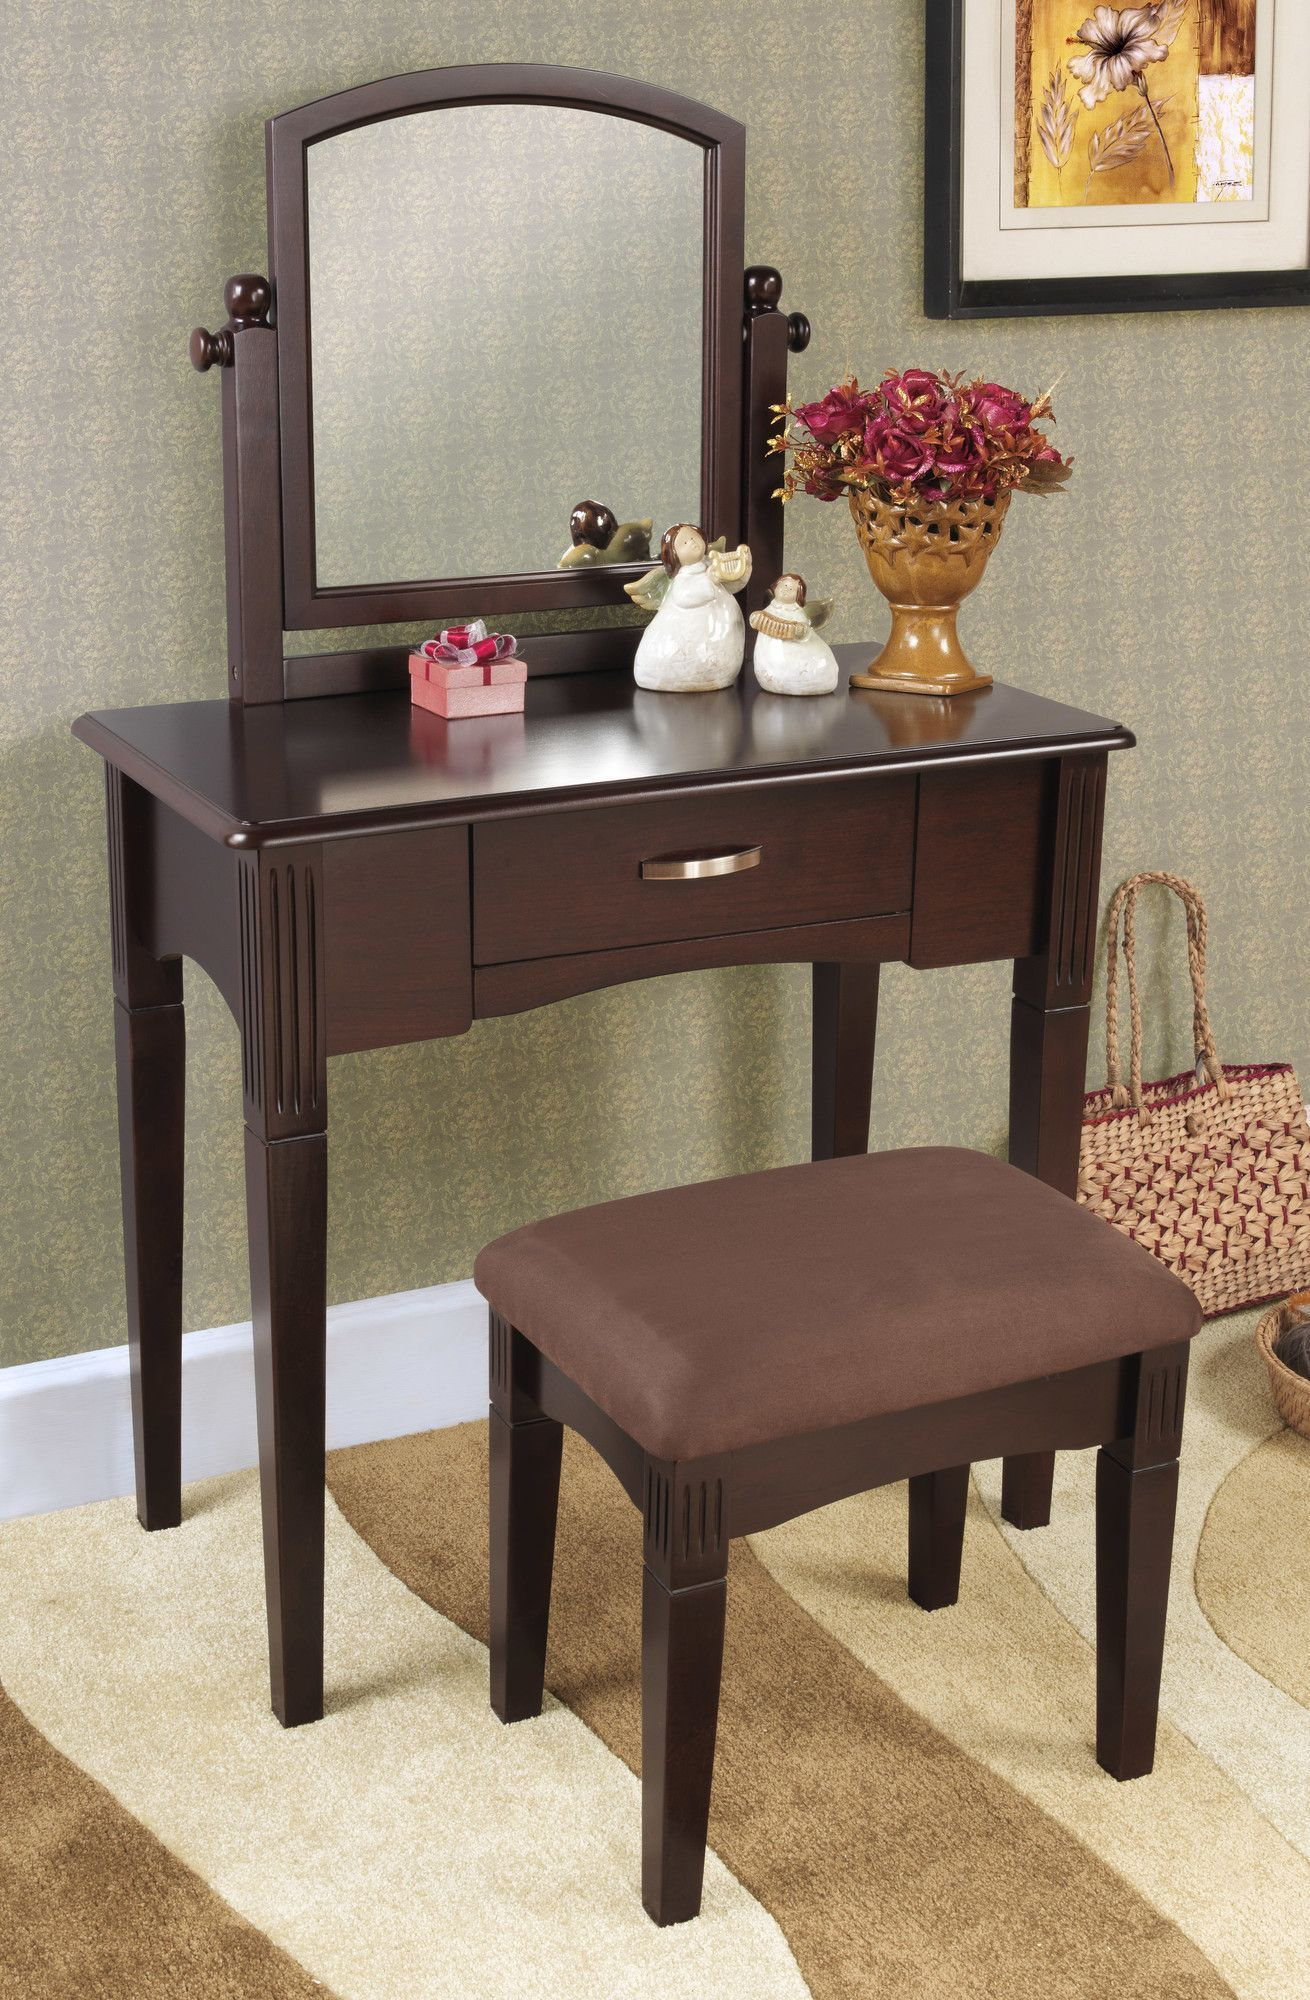 Features Set Includes Vanity Table Mirror And Stool Standing Felt Lined Drawers Traditional Style Product Type